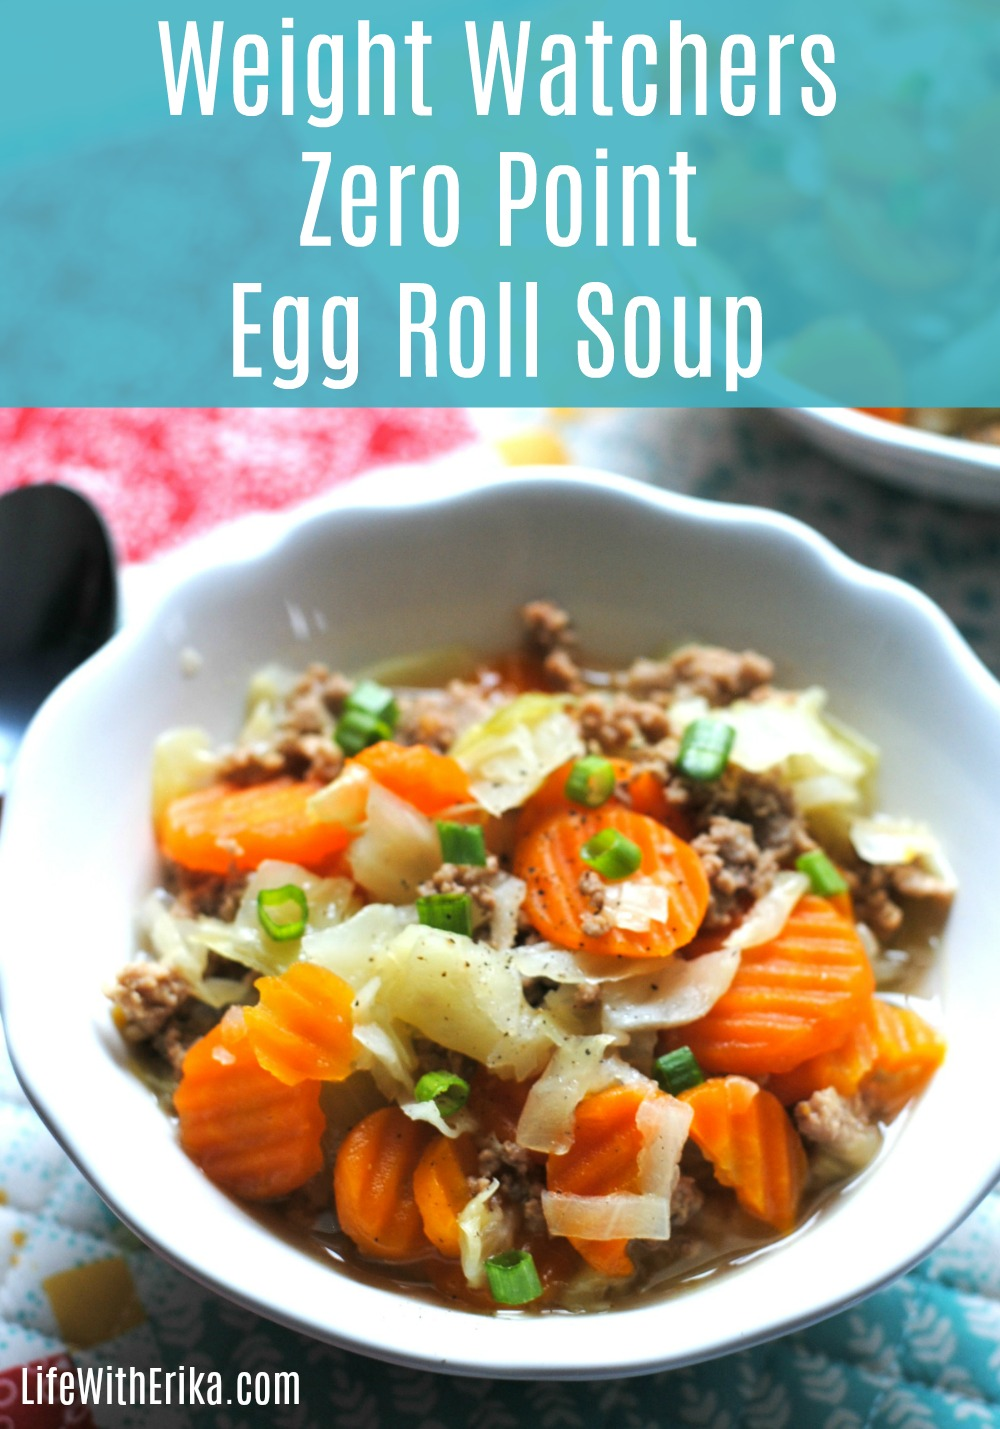 Life With Erika Weight Watchers Zero Point Egg Roll Soup